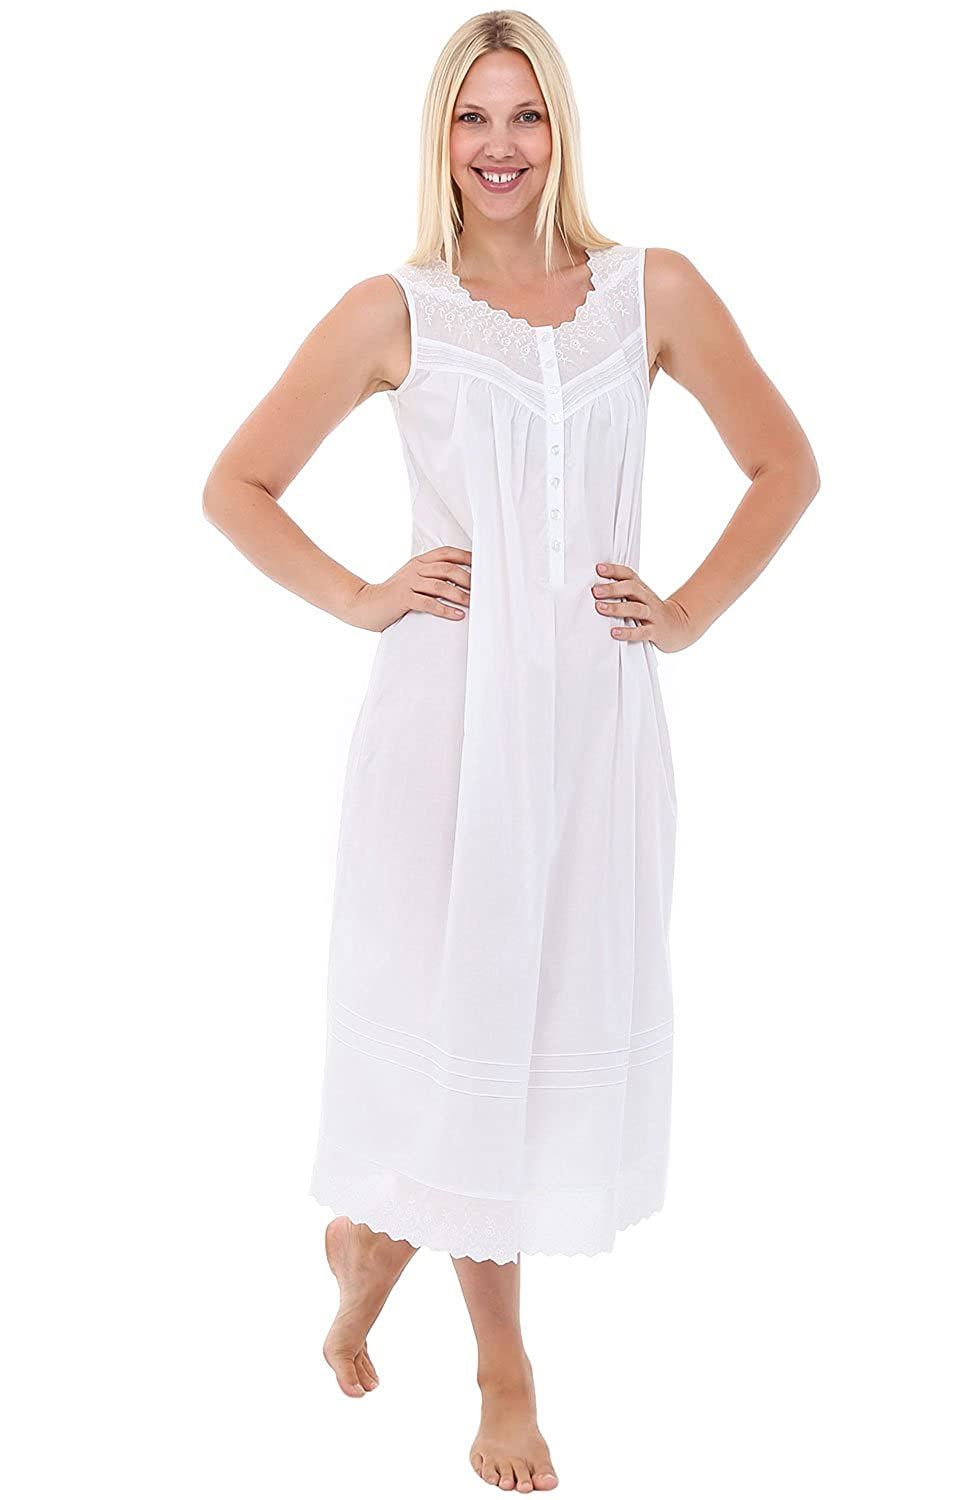 Alexander Del Rossa Womens Diana Cotton Nightgown a185ddb6c